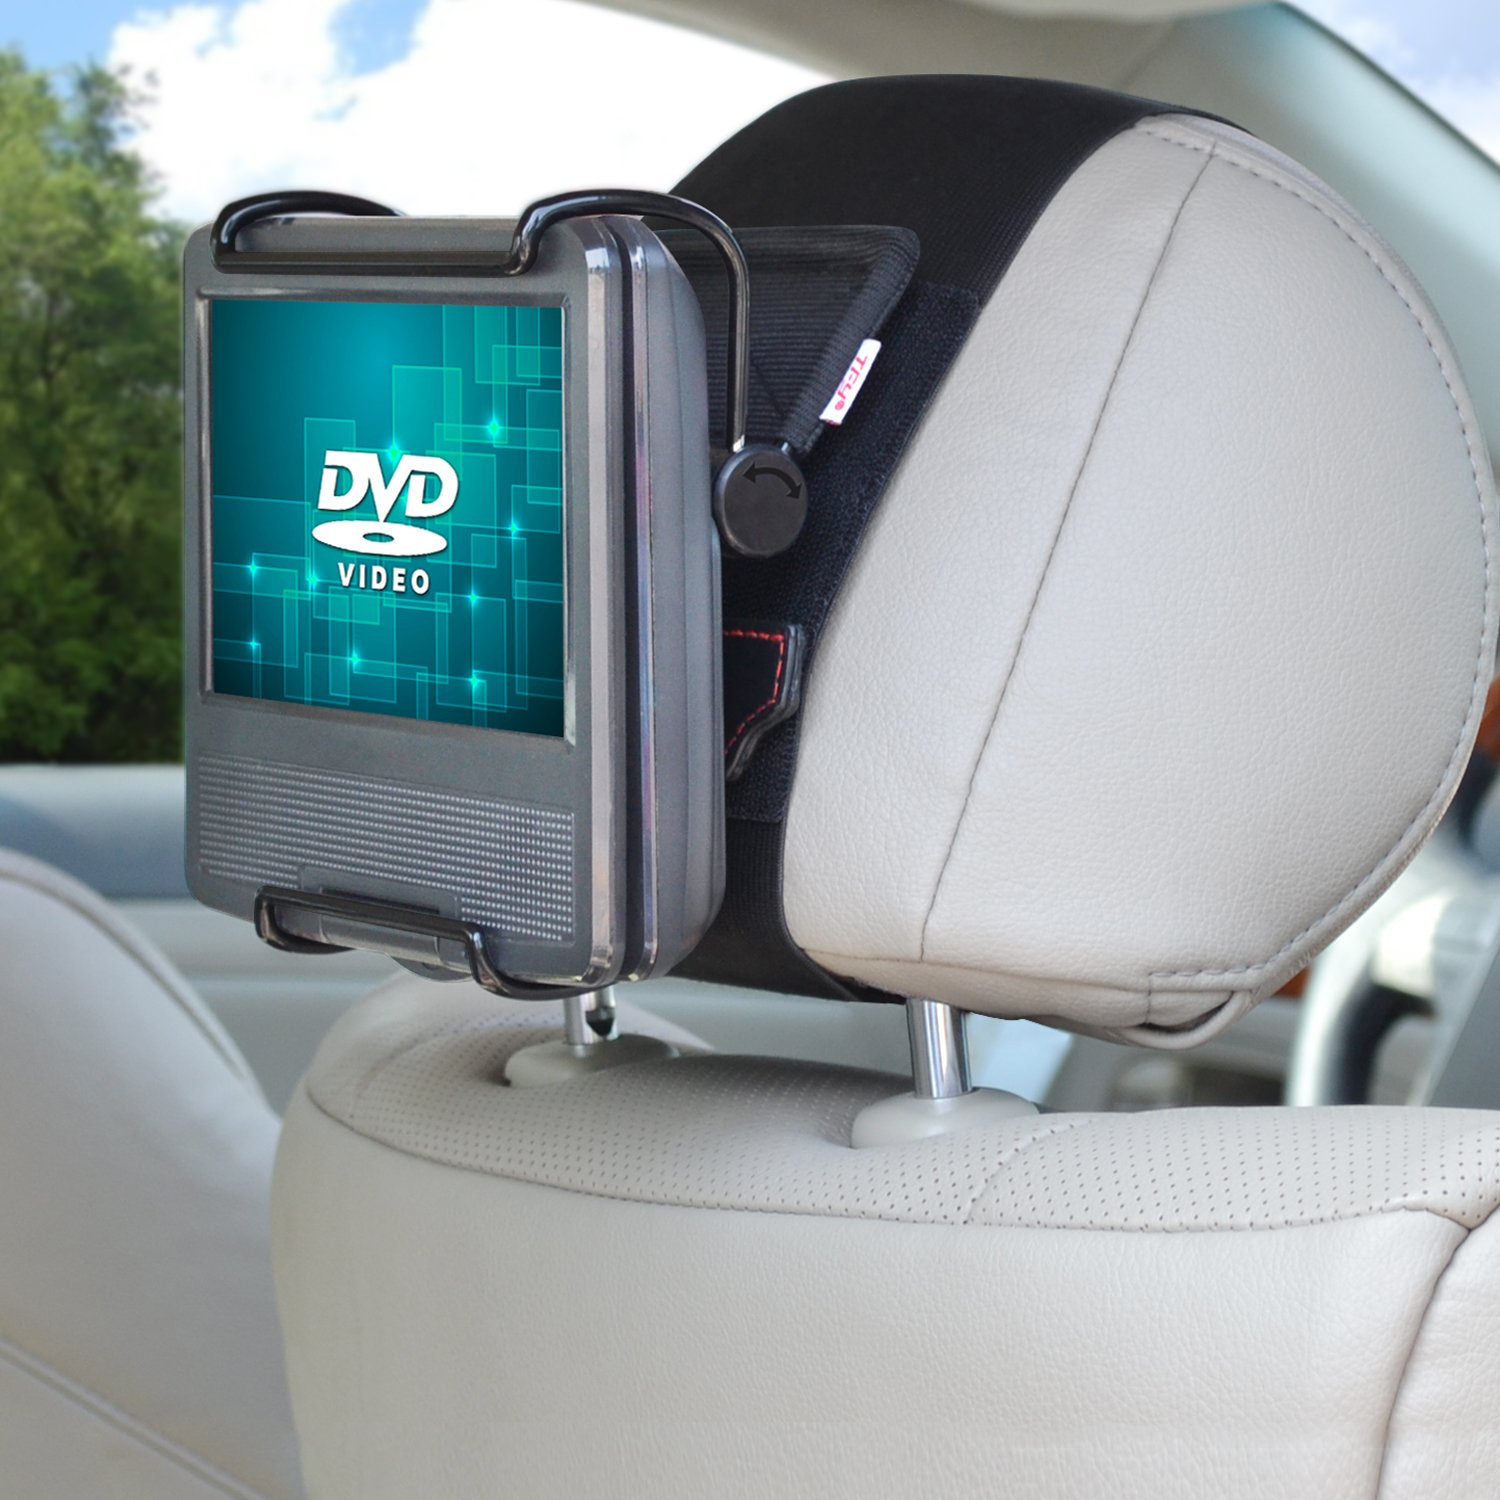 TFY Universal Car Headrest Mount Holder with Angle- Adjustable Holding Clamp for 7-10 Inch Swivel Screen Portable DVD Players, Black by TFY